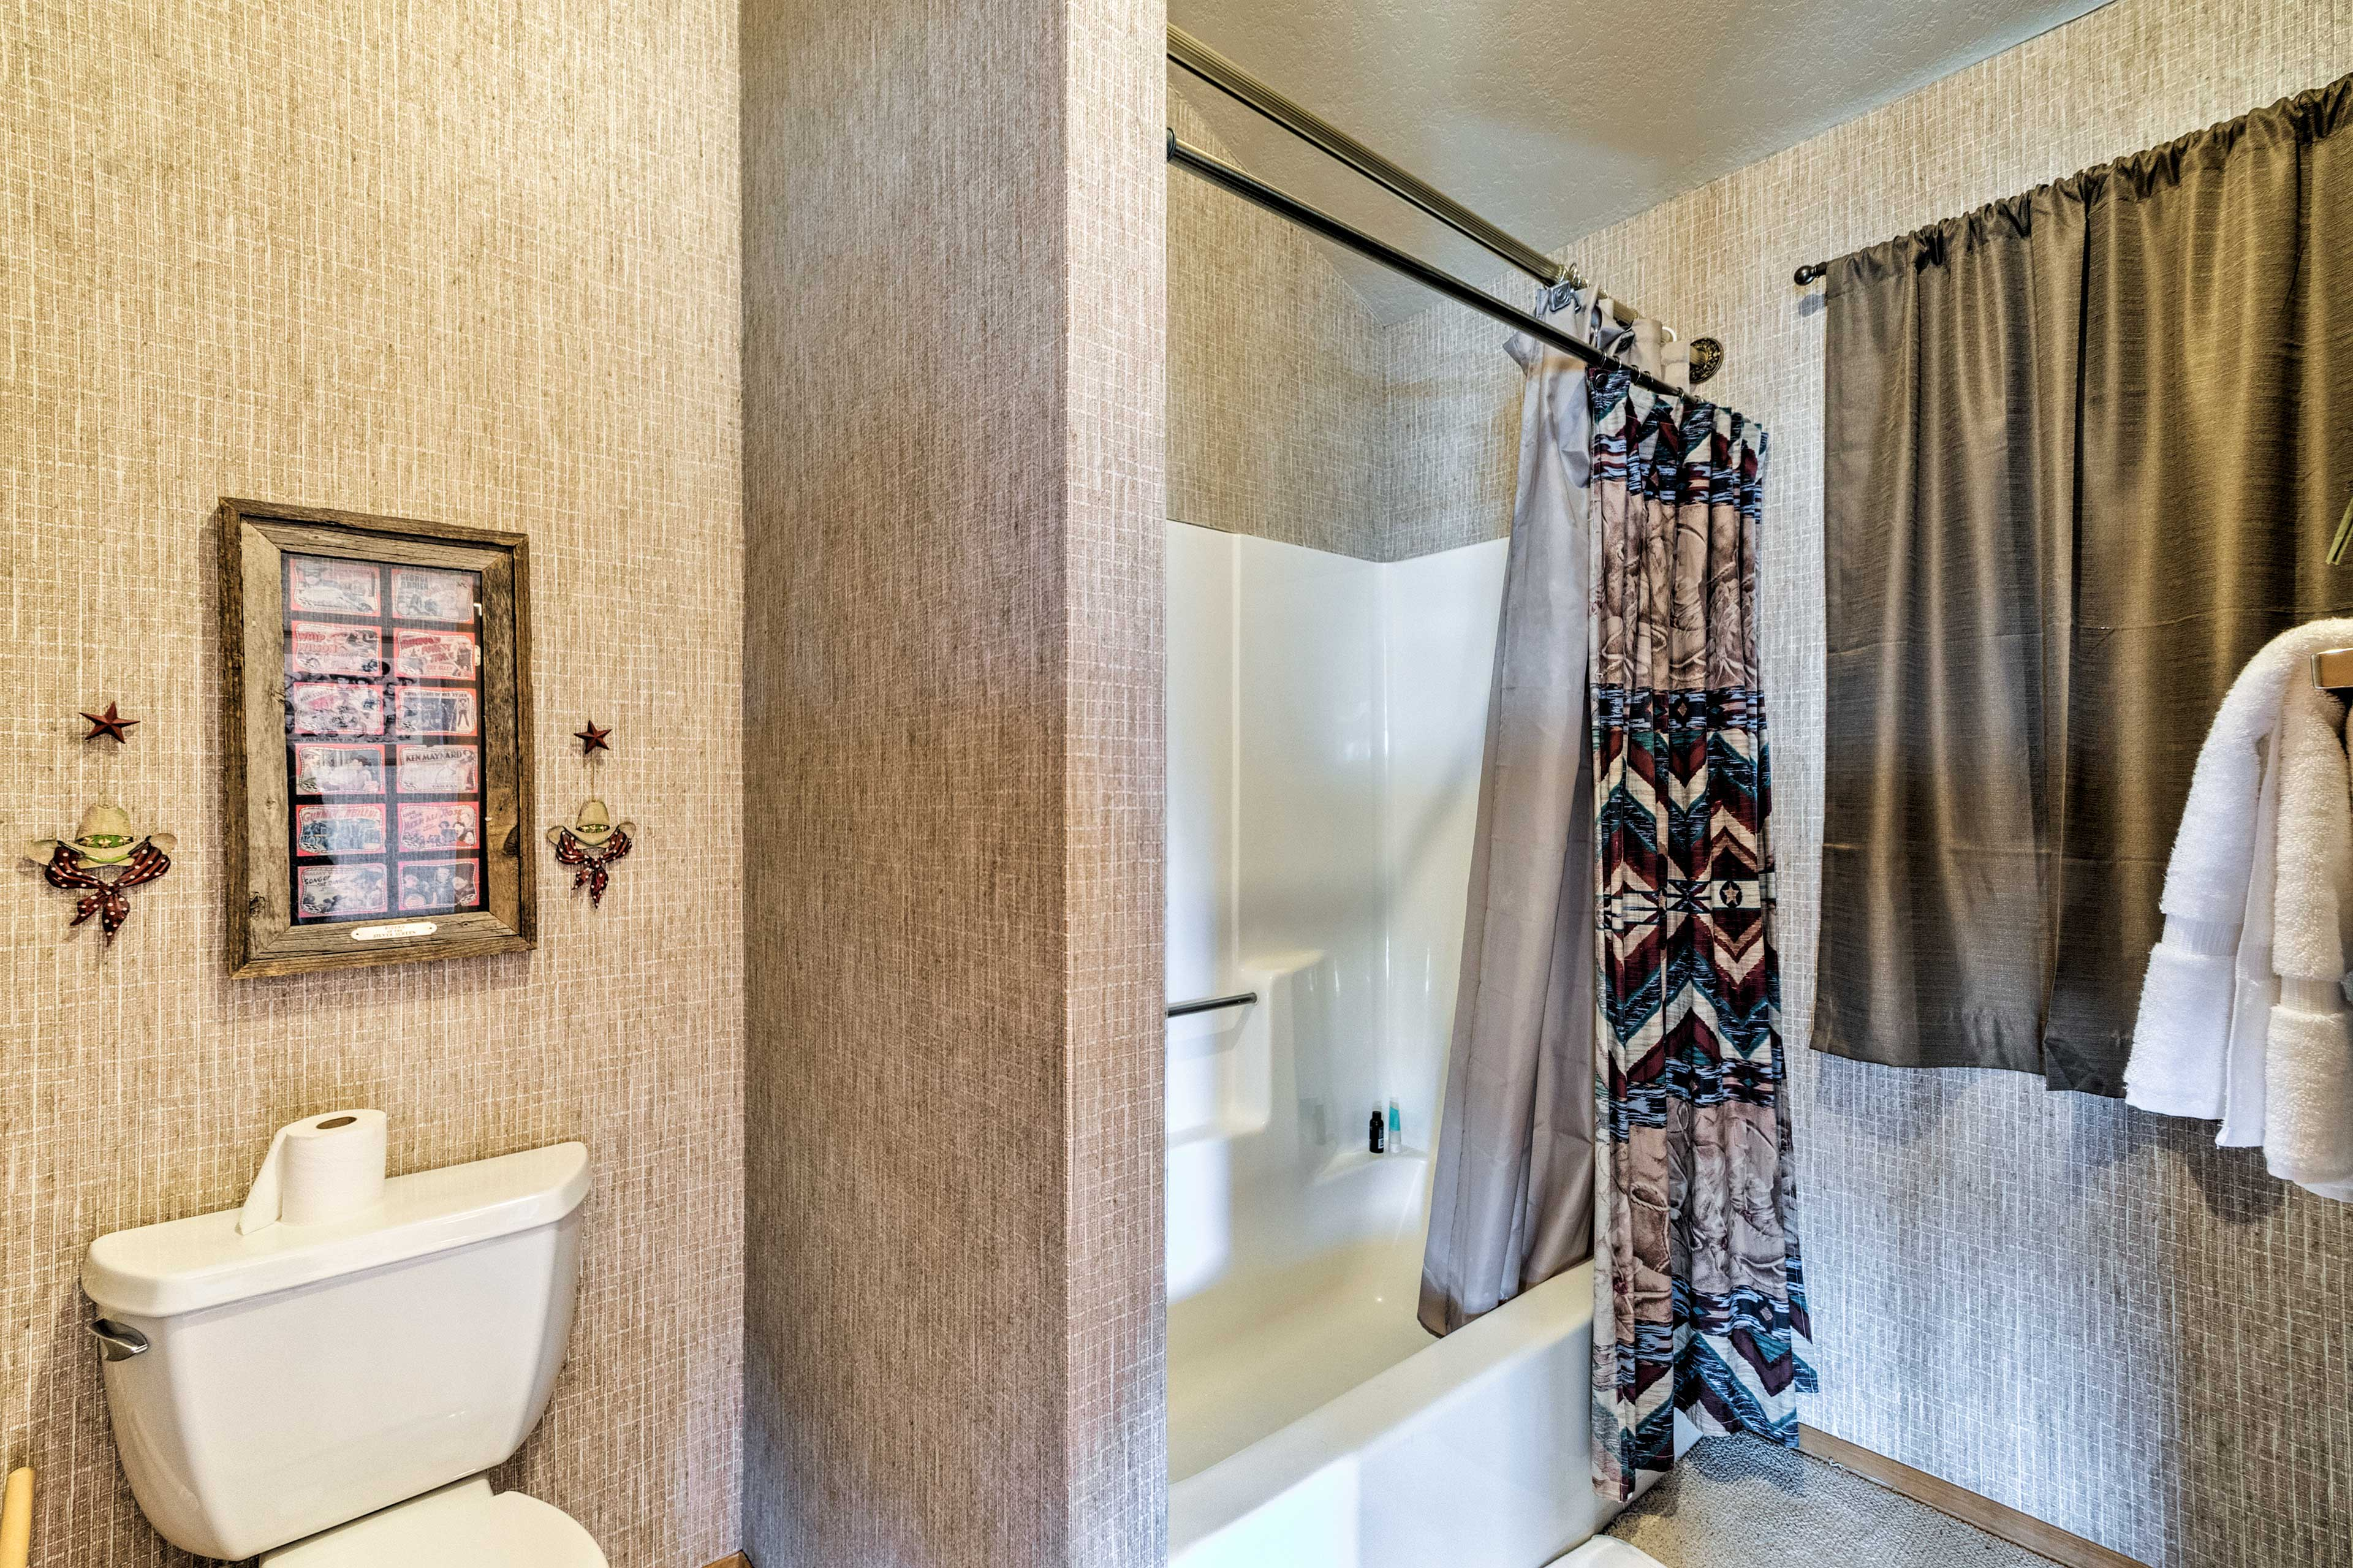 A third full bathroom hosts this shower/tub combo.